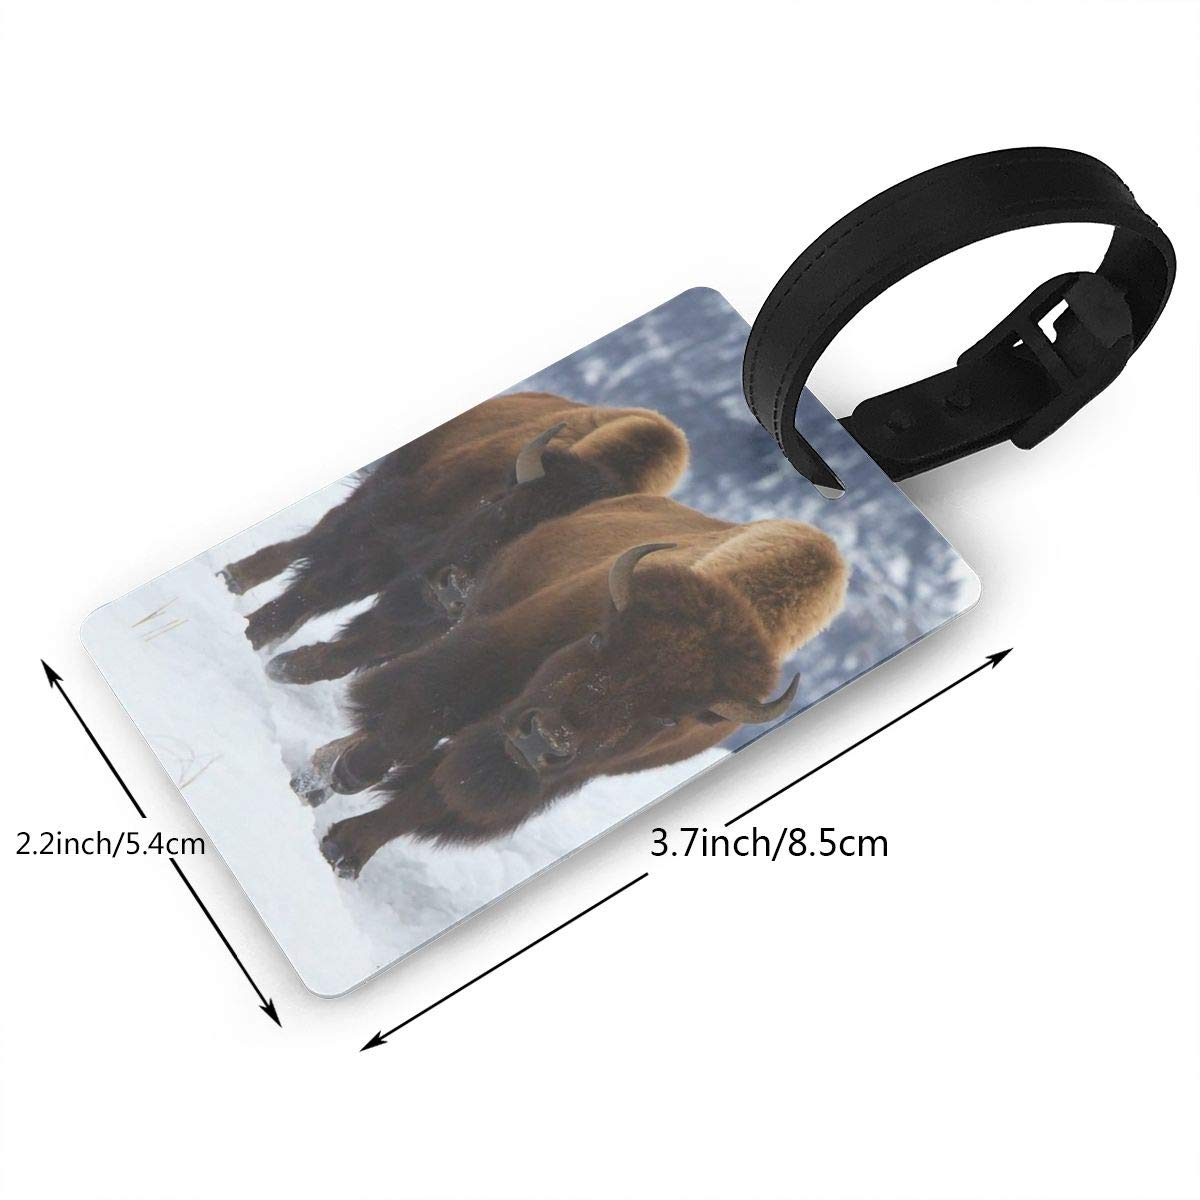 Buffaloes Cruise Luggage Tag For Travel Bag Suitcase Accessories 2 Pack Luggage Tags